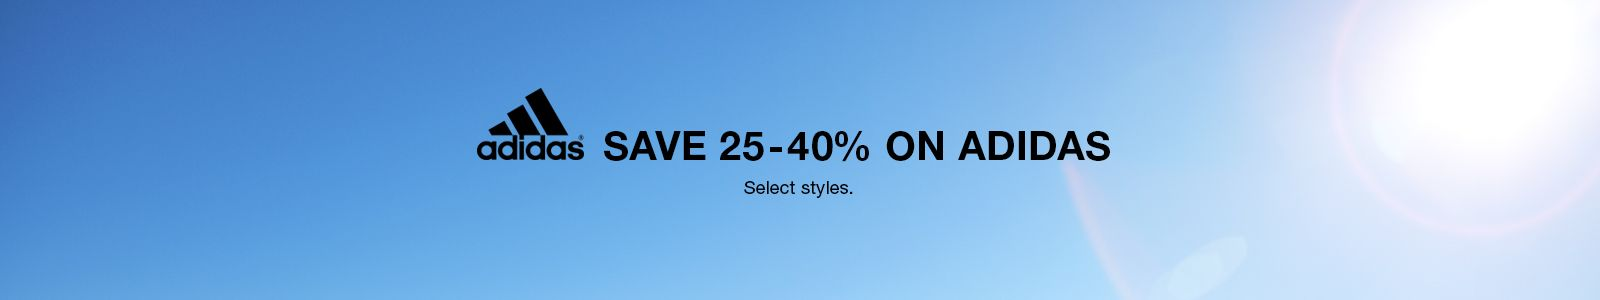 Save 25-40 percent on Adidas, Select styles